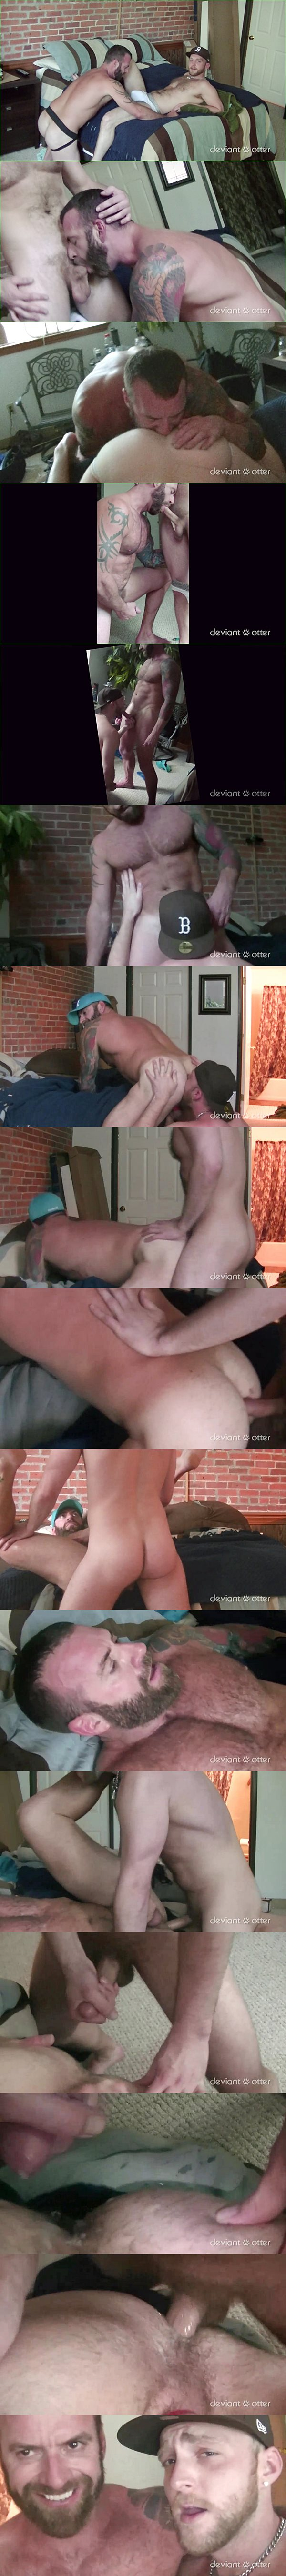 Devian Totter barebacks and breeds a hot Aussie muscle daddy who looks like Hugh Jackman in Breeding an Aussie Daddy at Deviantotter 02